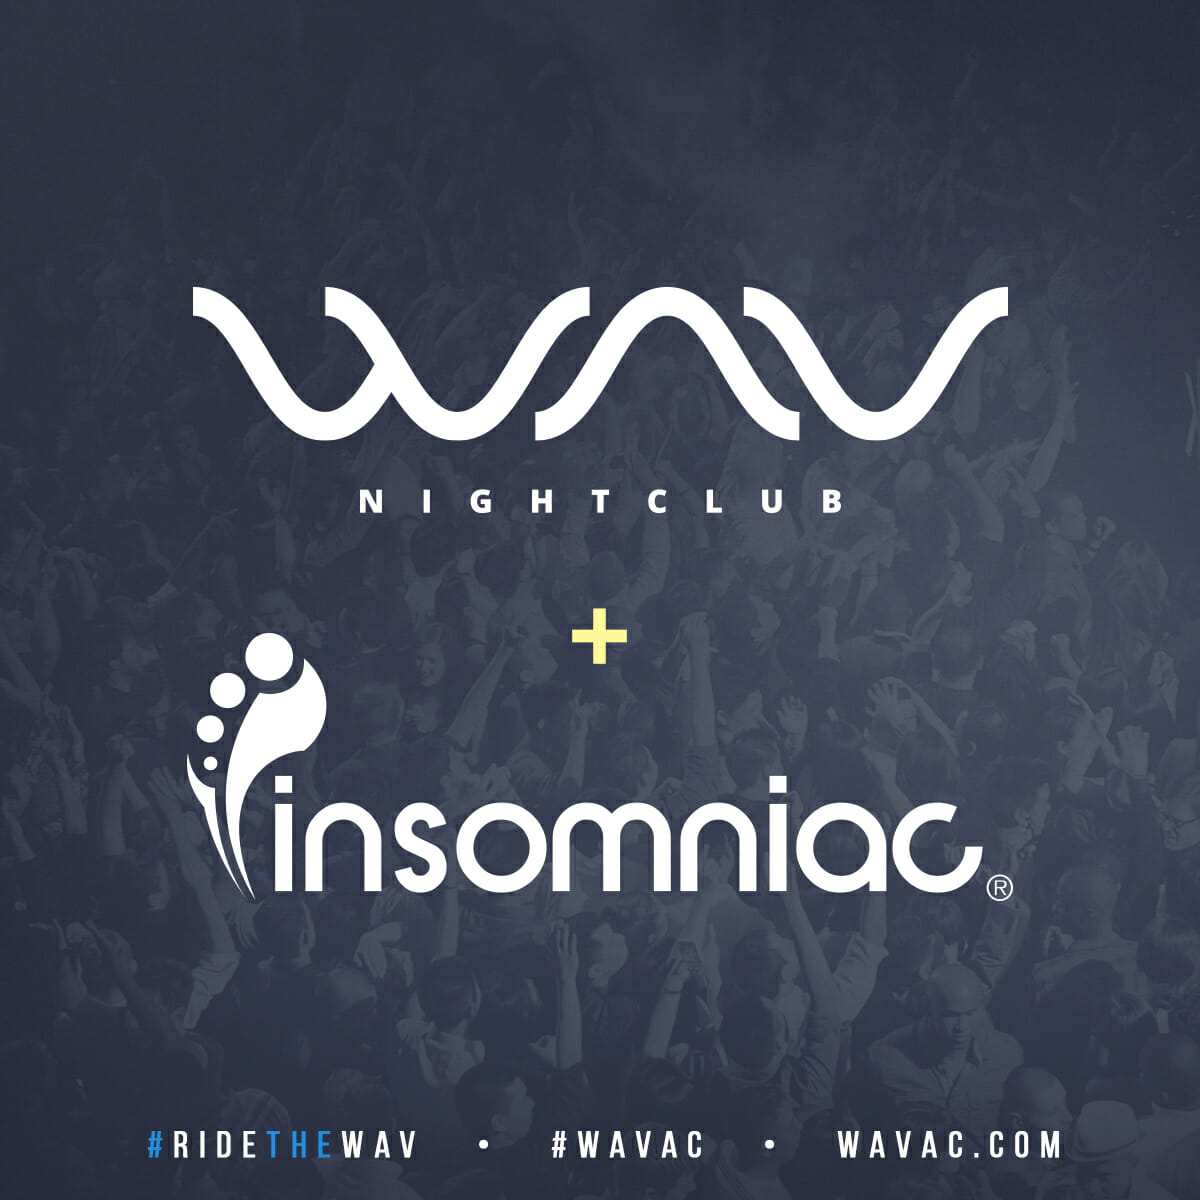 Insomniac sets up shop on East Coast, announces partnership with WAV NightclubWAV IS 2